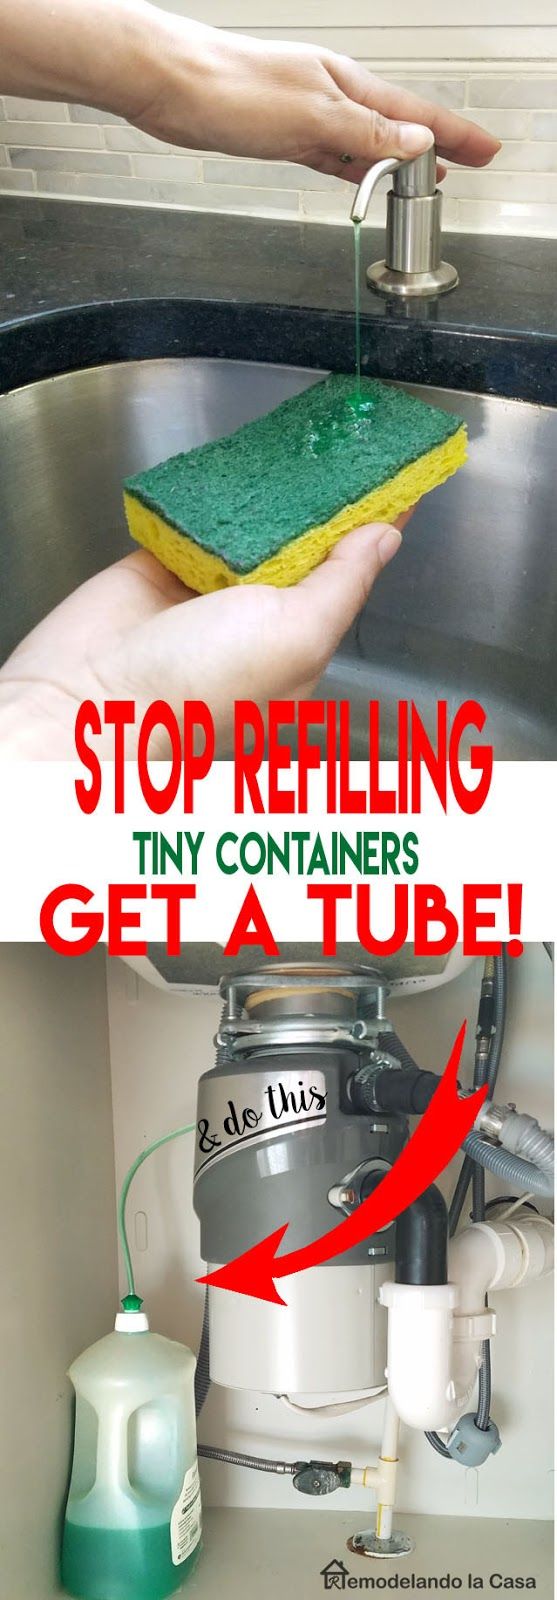 install a tub to a big soap container under the sink